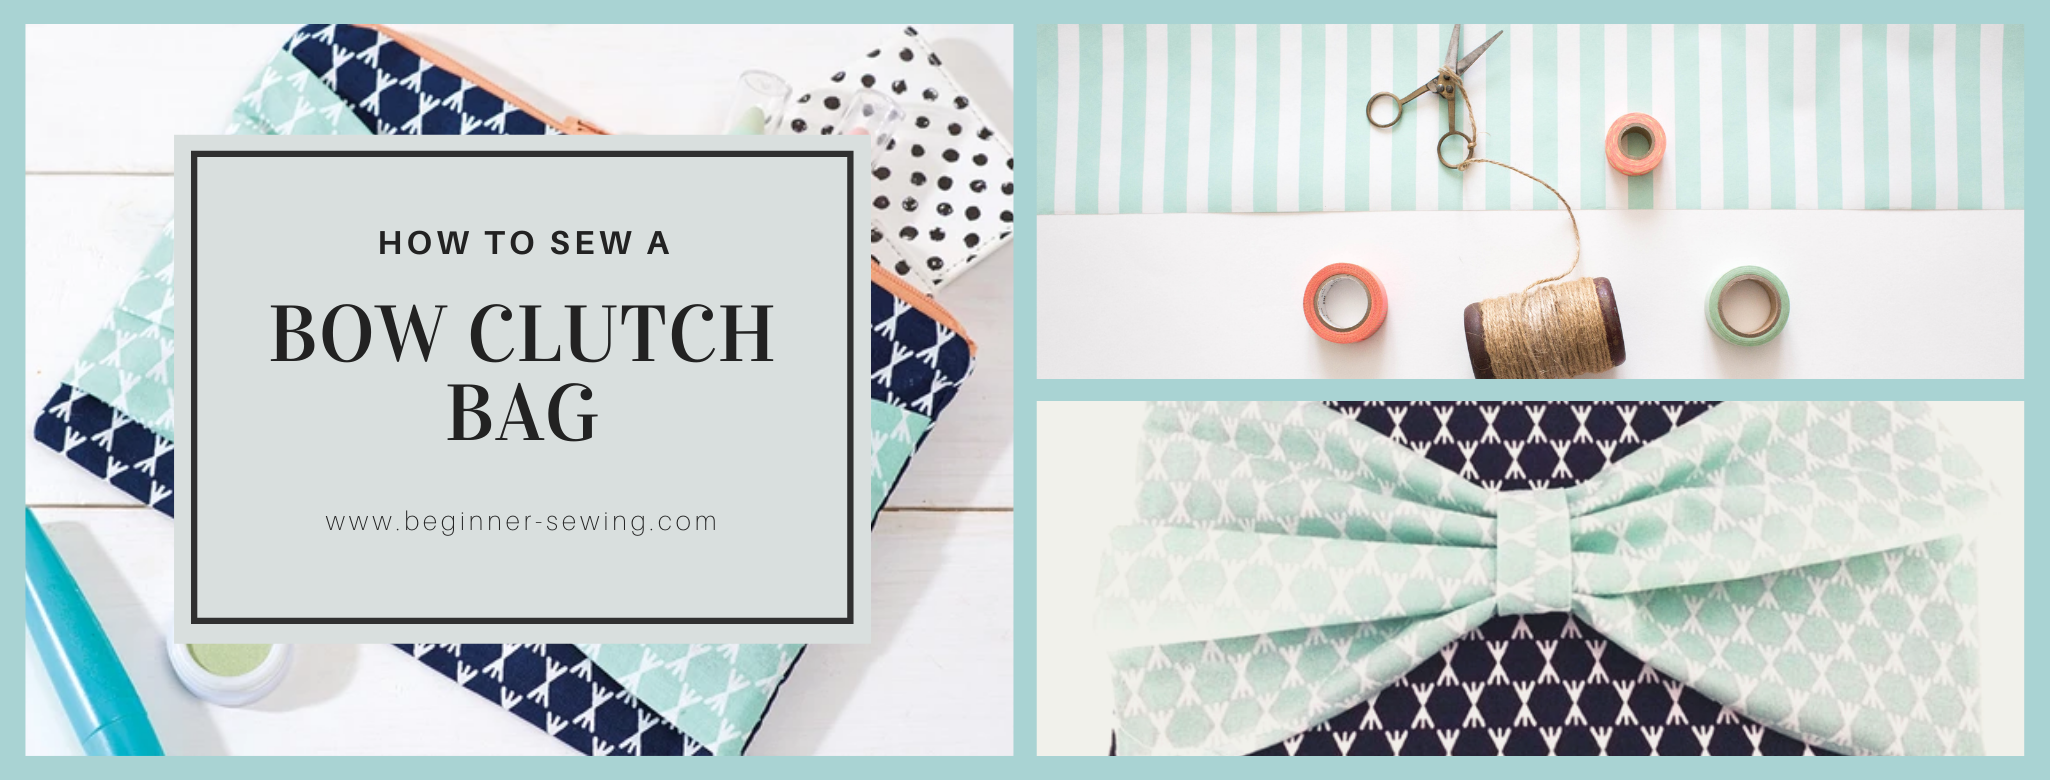 How to Sew a Clutch Bag for Beginners